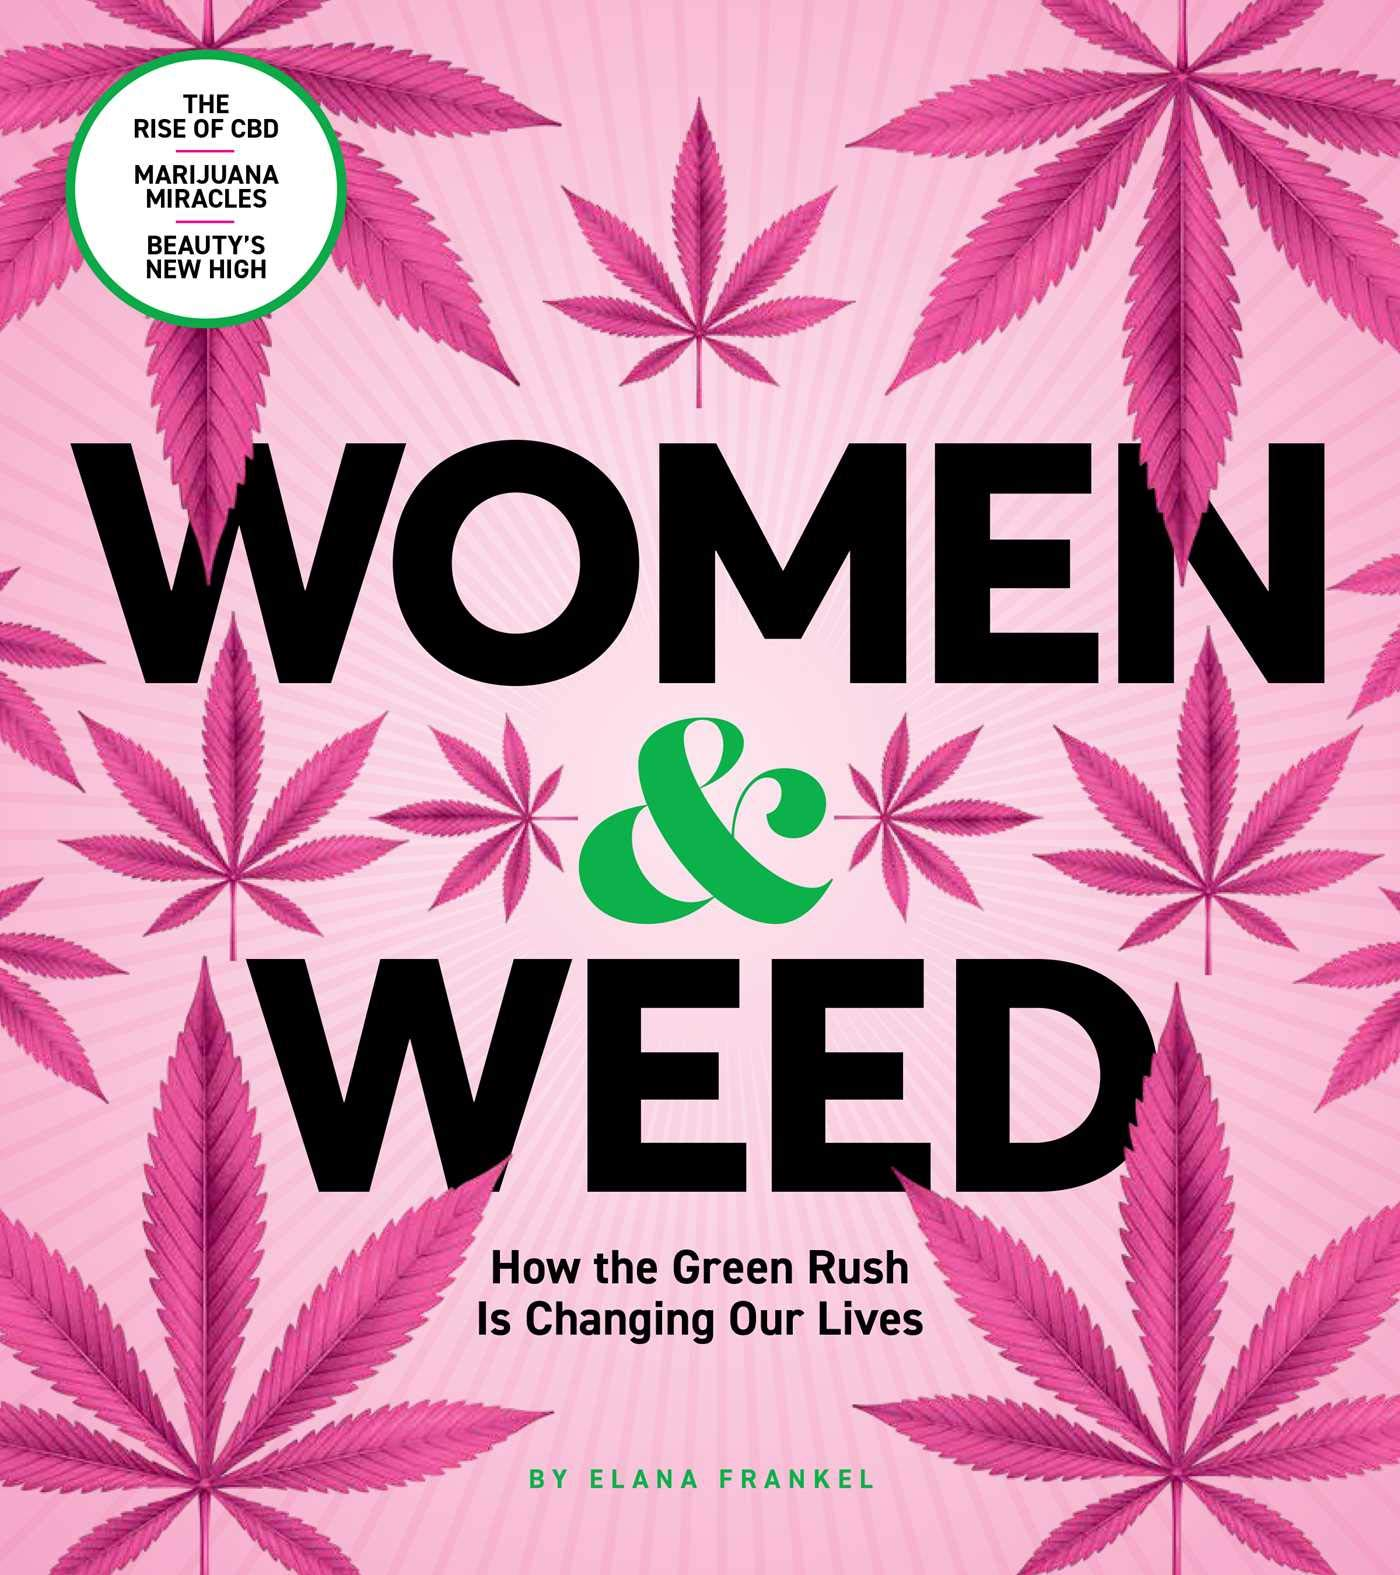 Women & Weed: How the Green Rush Is Changing Our Lives